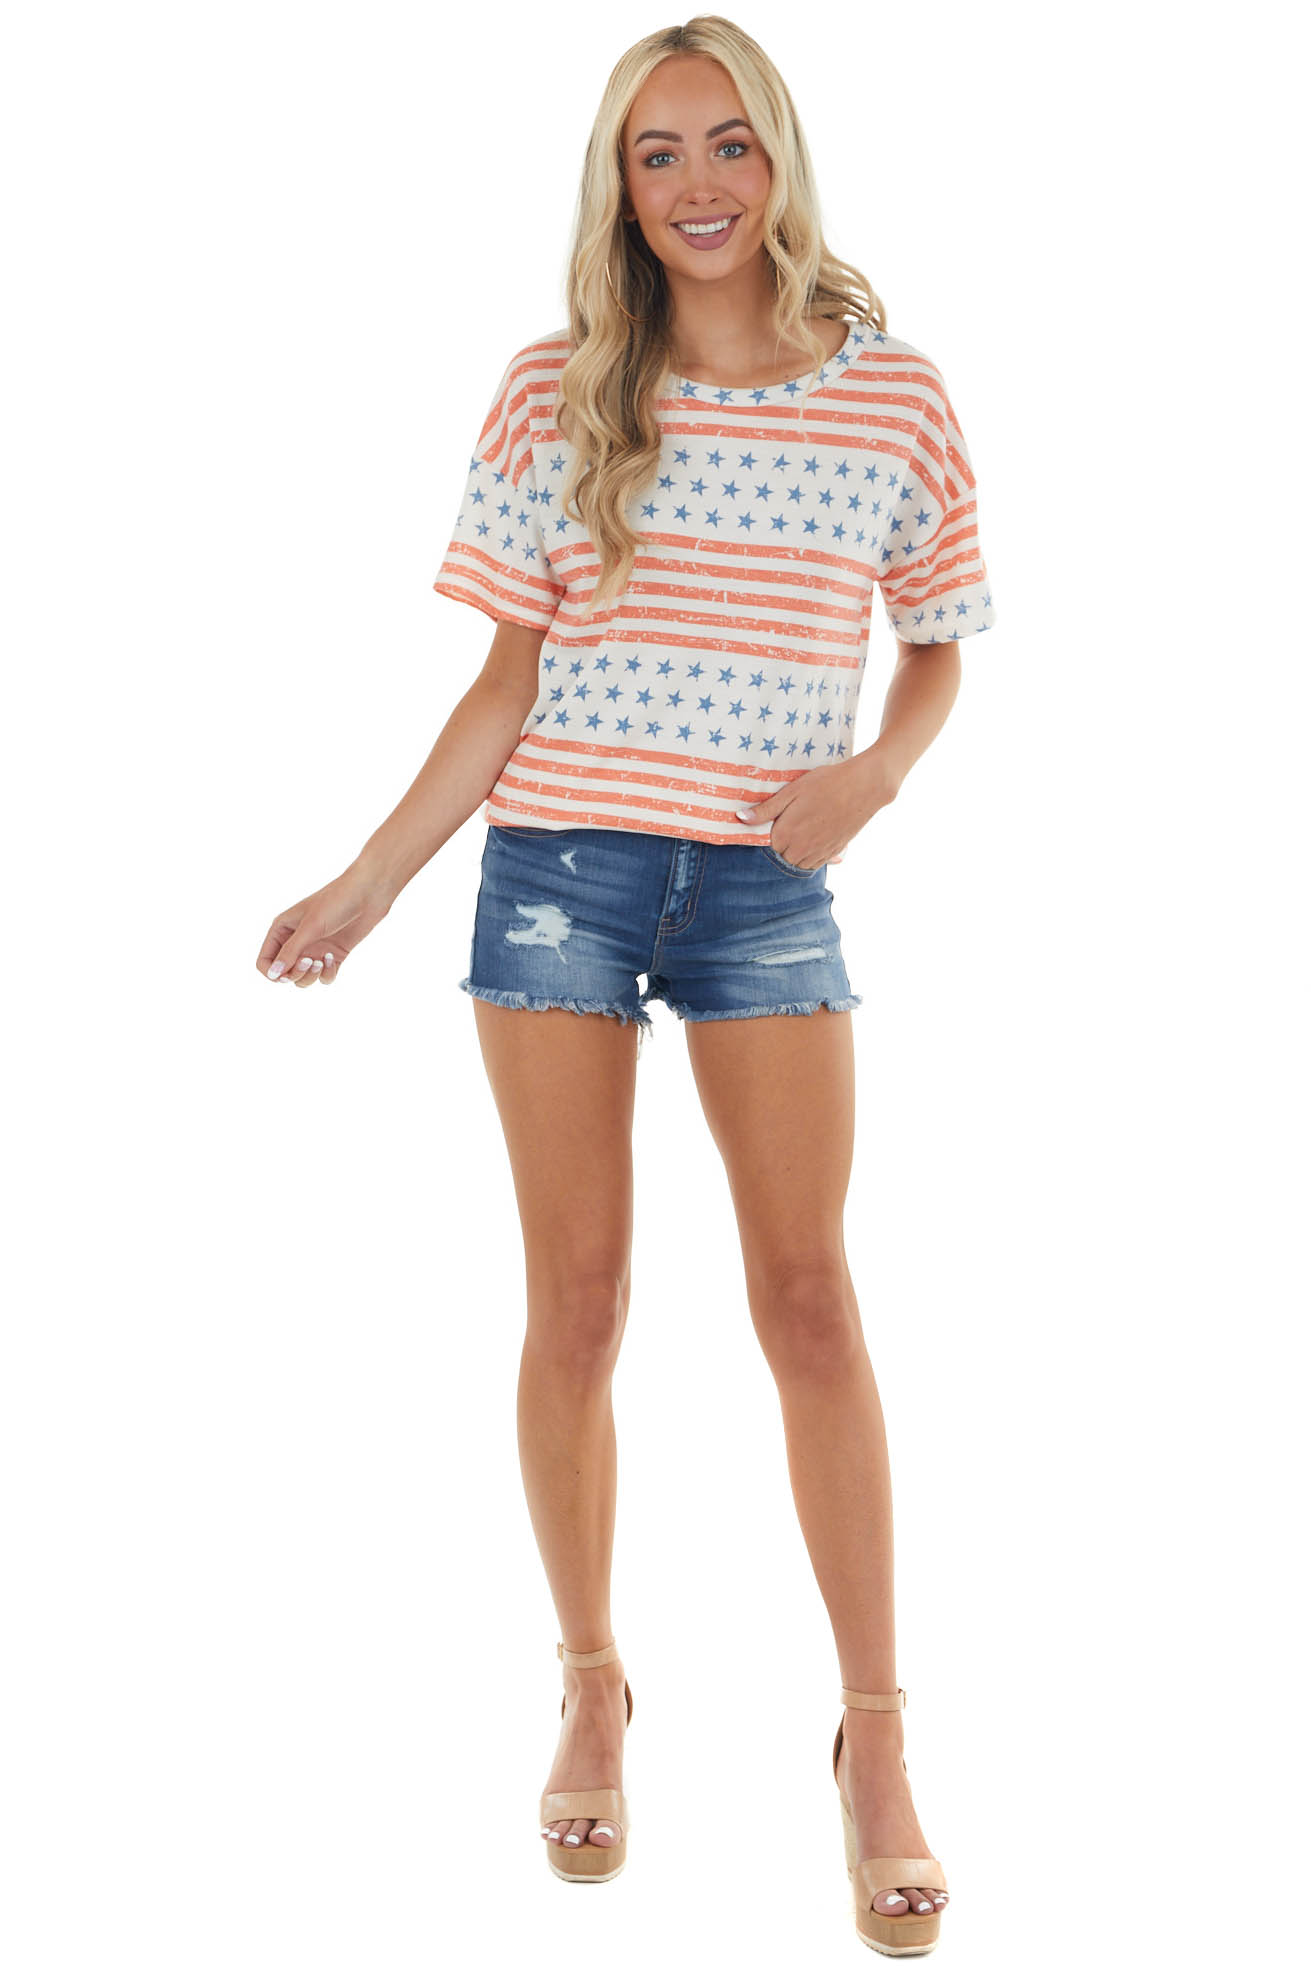 Coral and Powder Blue American Flag Print Soft Knit Top